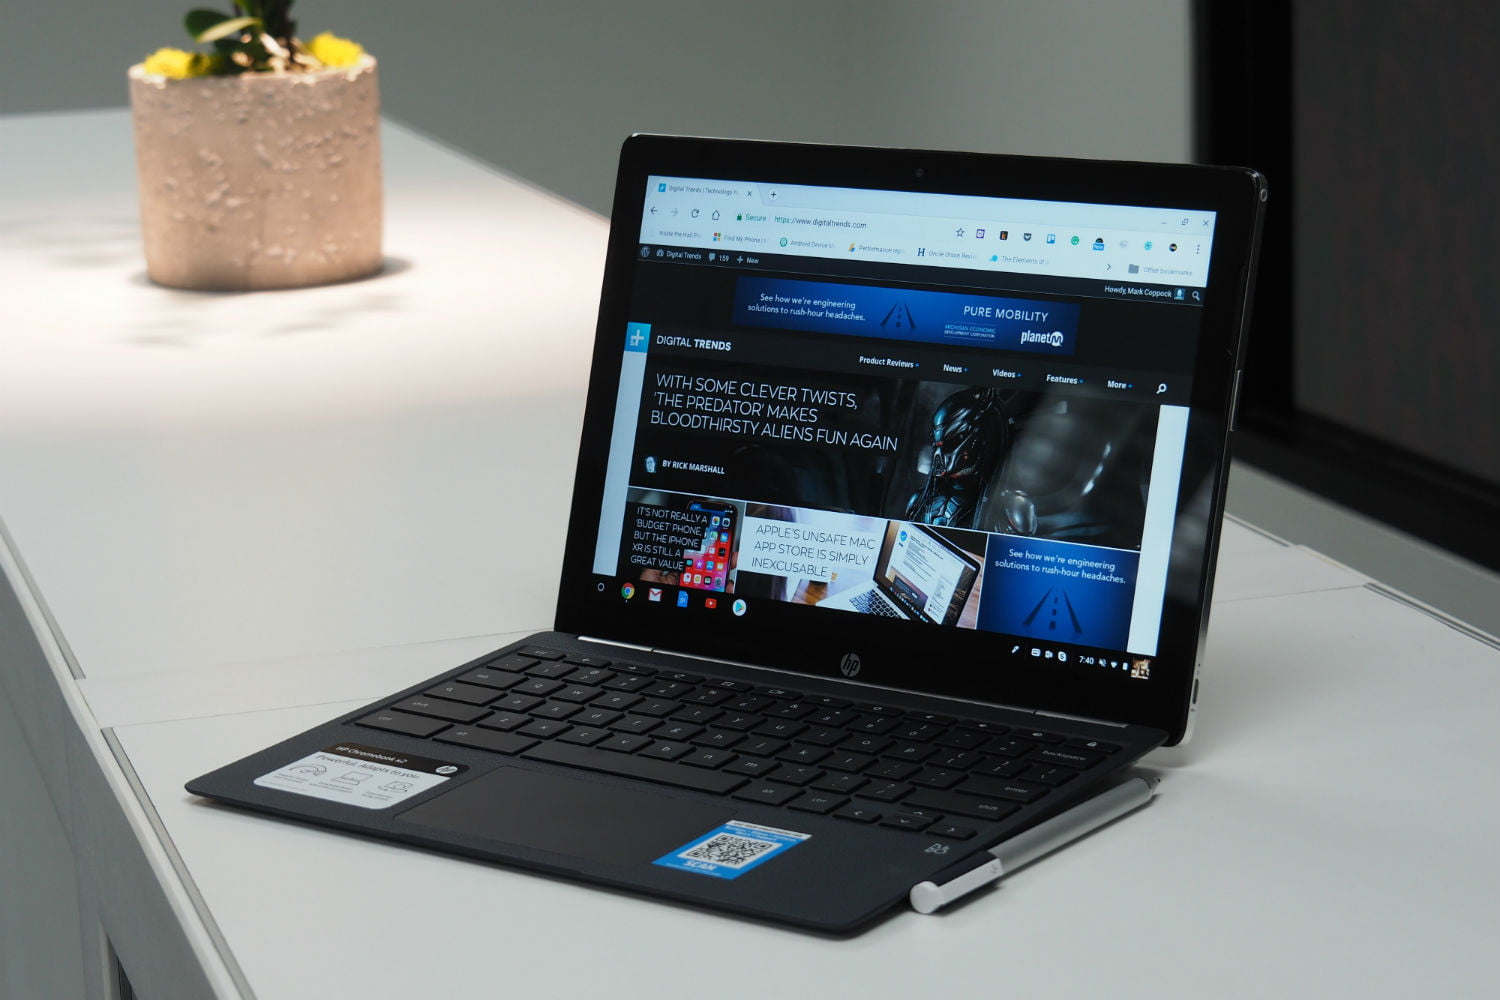 Le meilleur Chromebook 2 en 1: HP Chromebook x2